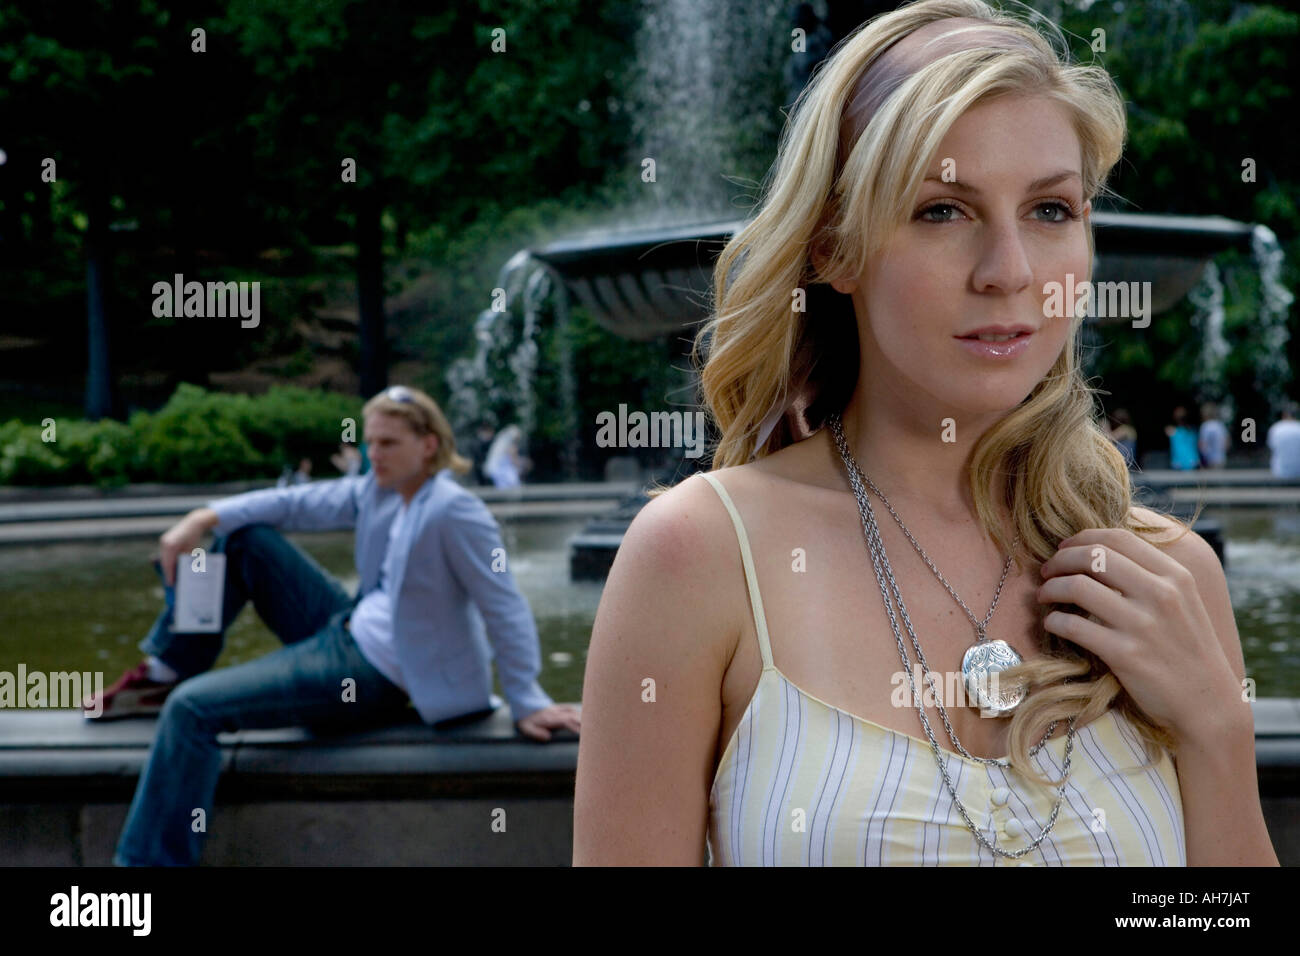 Young woman looking away with a young man sitting in the background near a fountain - Stock Image